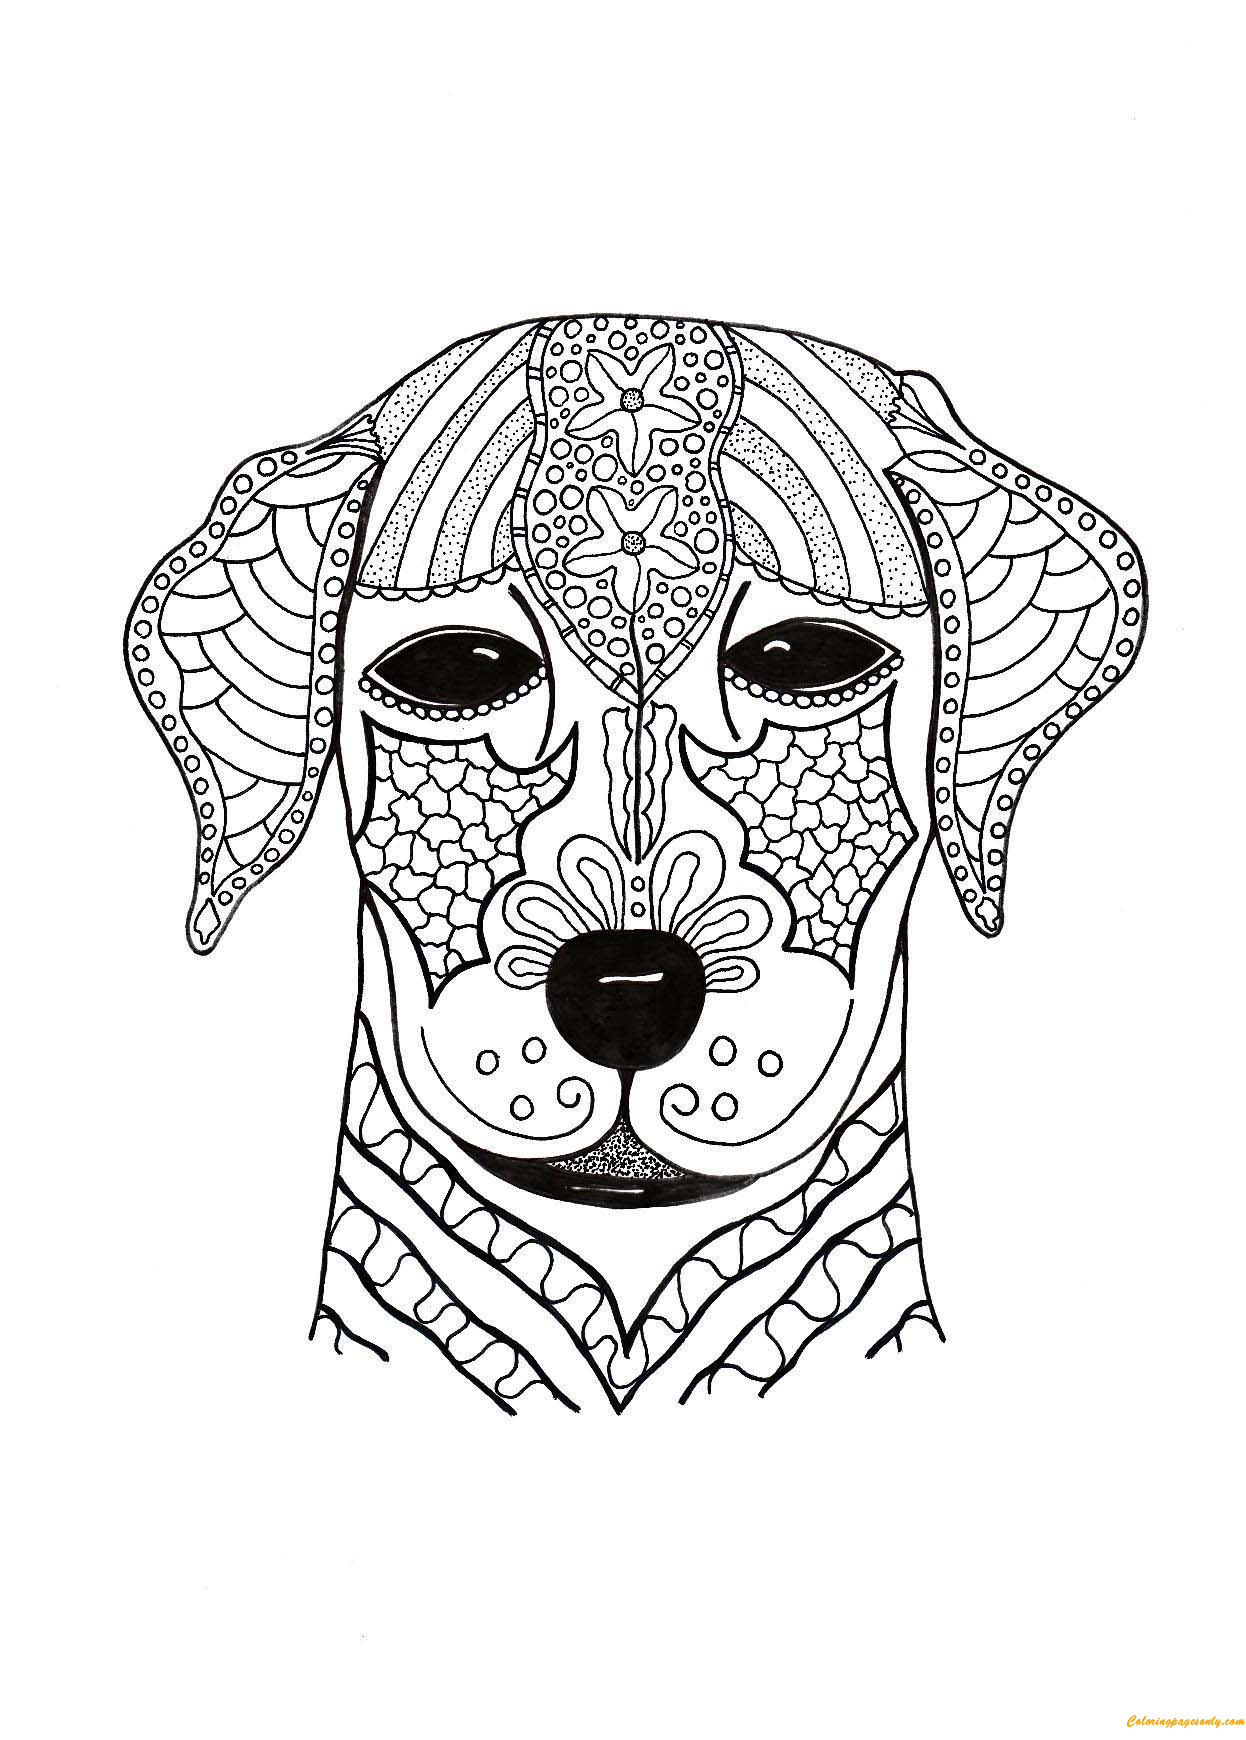 Cute Dog Face Coloring Page - Free Coloring Pages Online